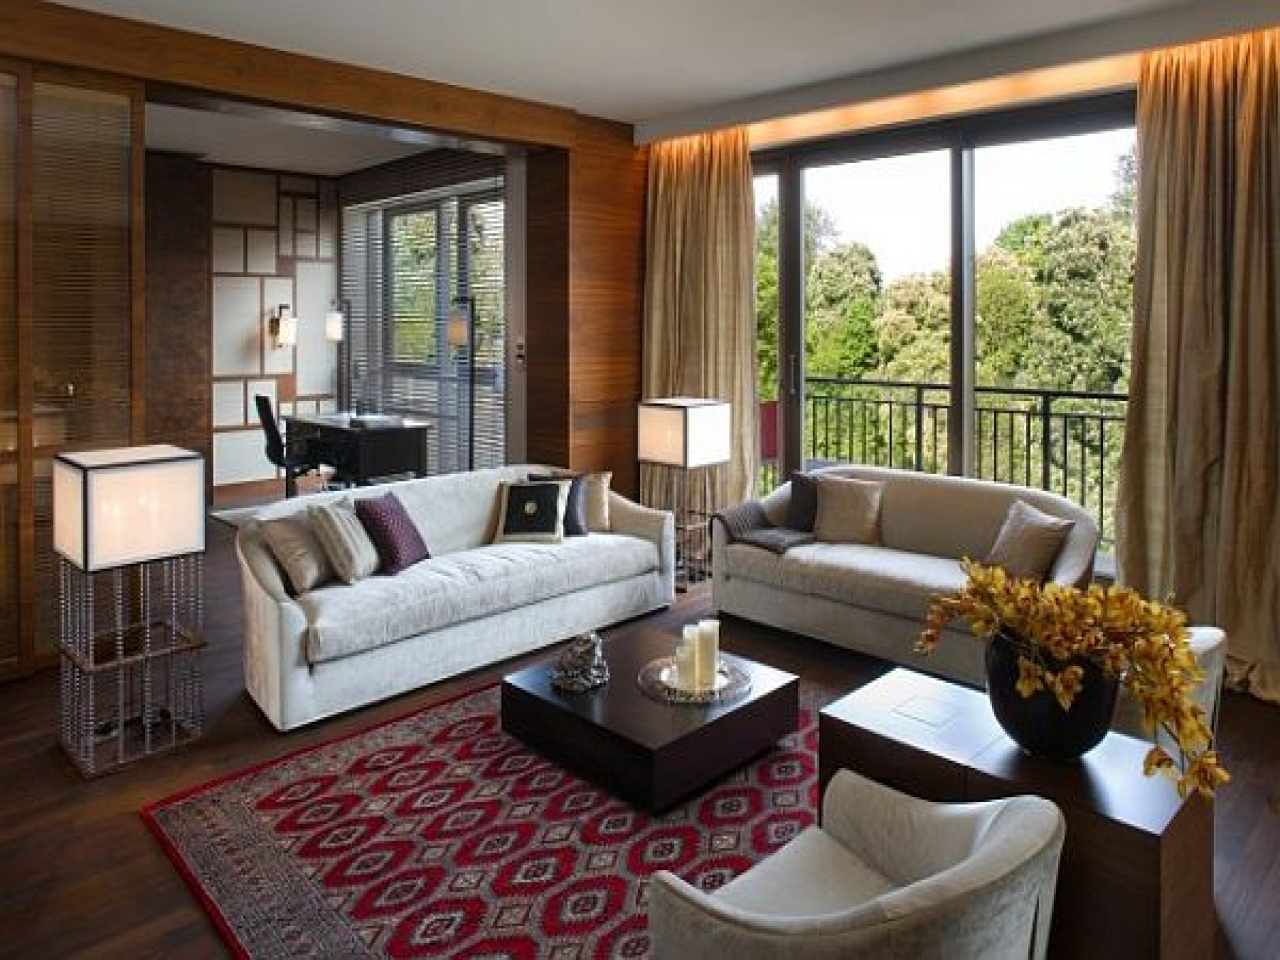 Image of: classic apartment living room ideas